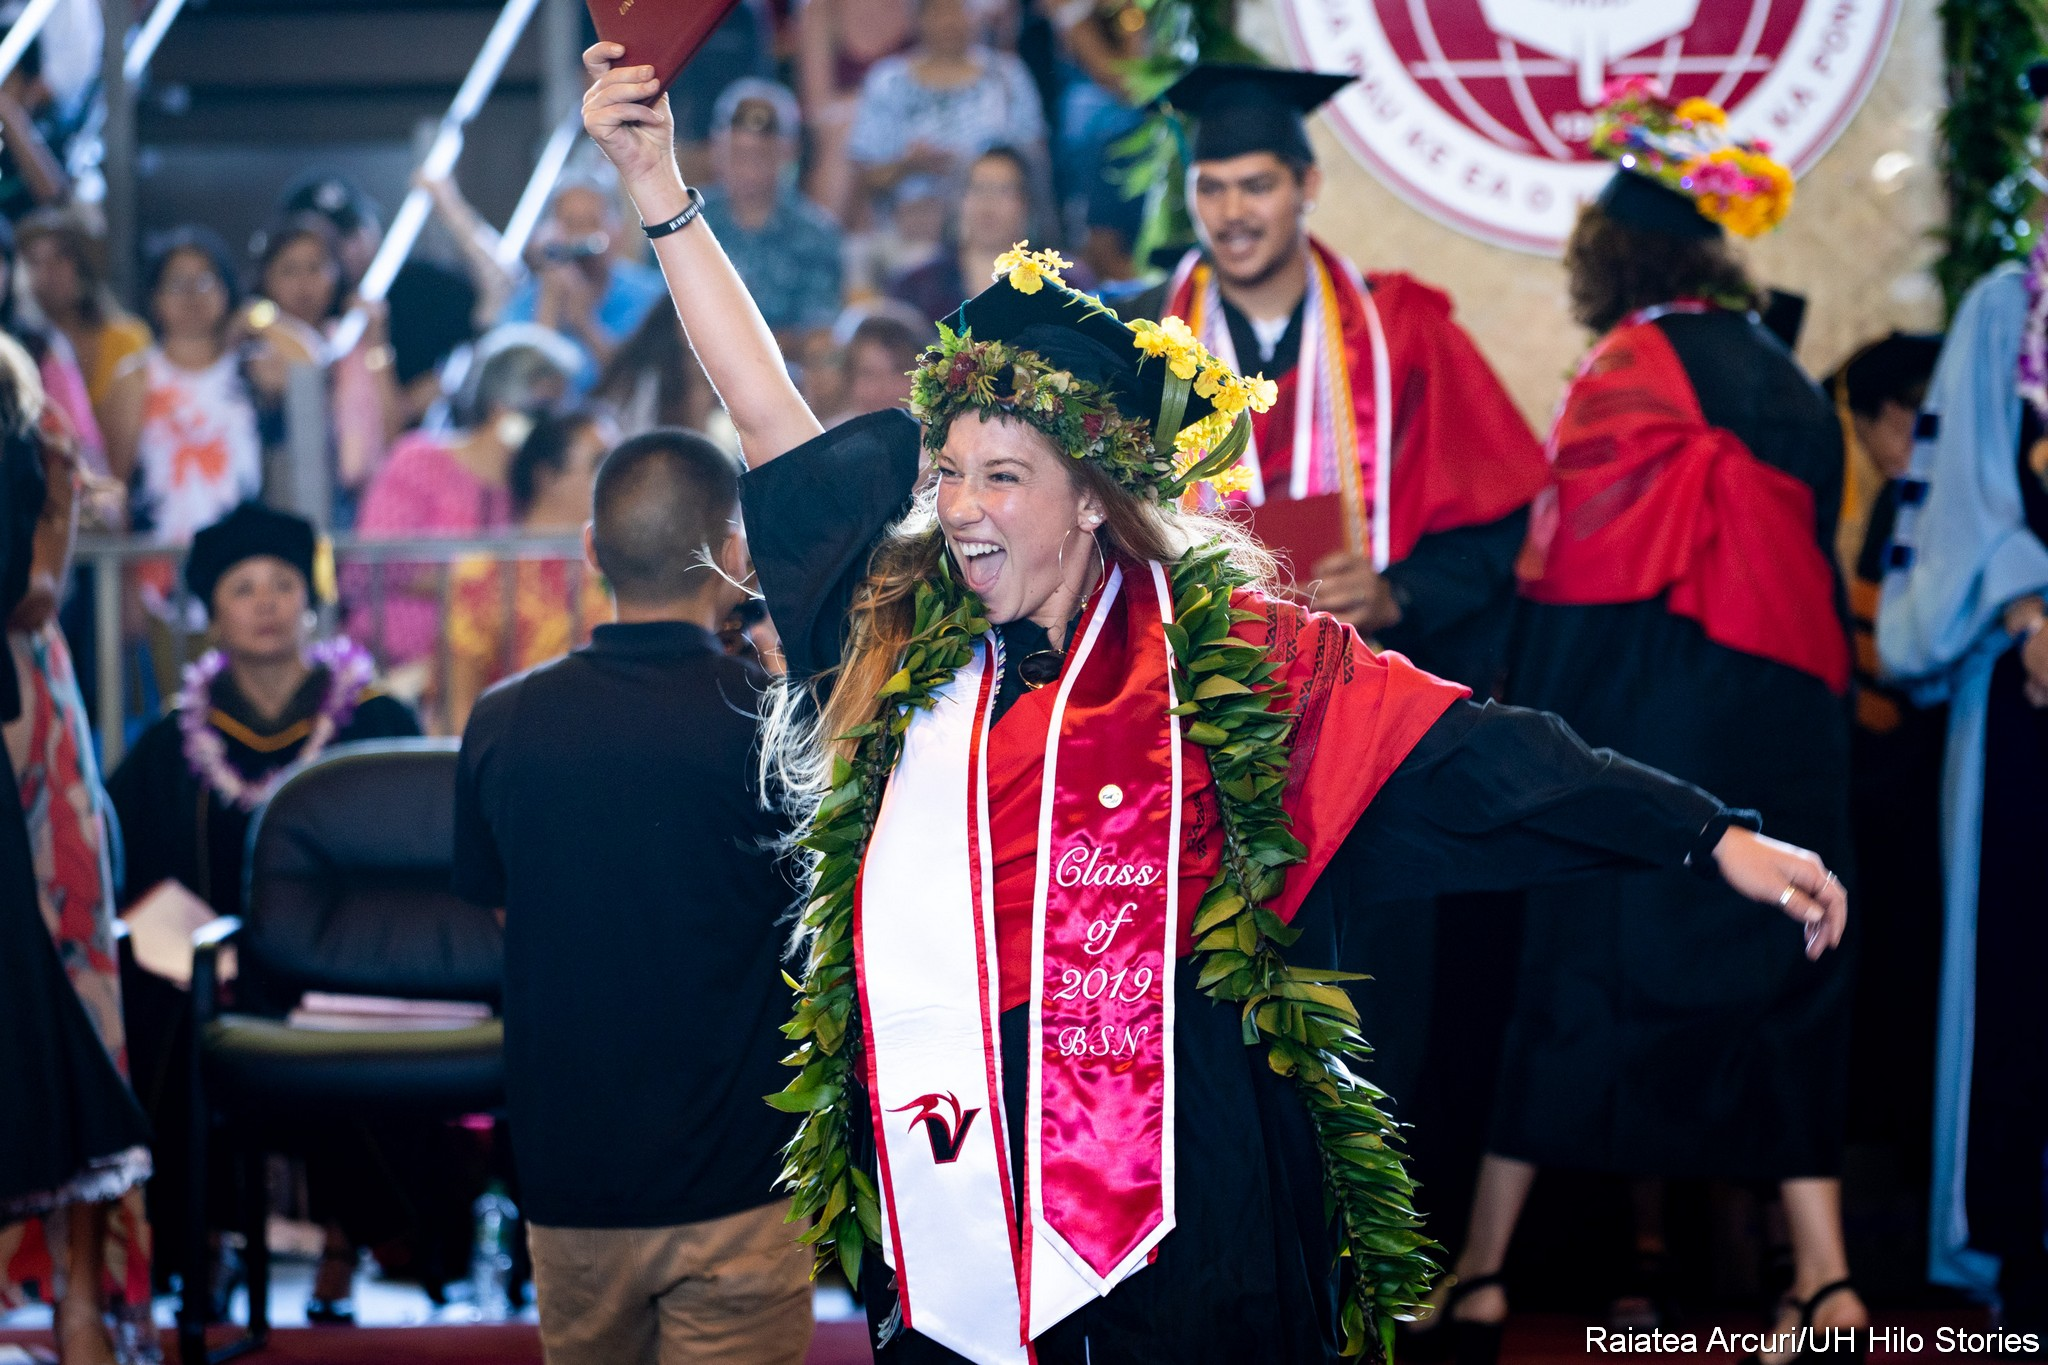 Female graduate leaving dais with diploma held high over head, showing audience members.